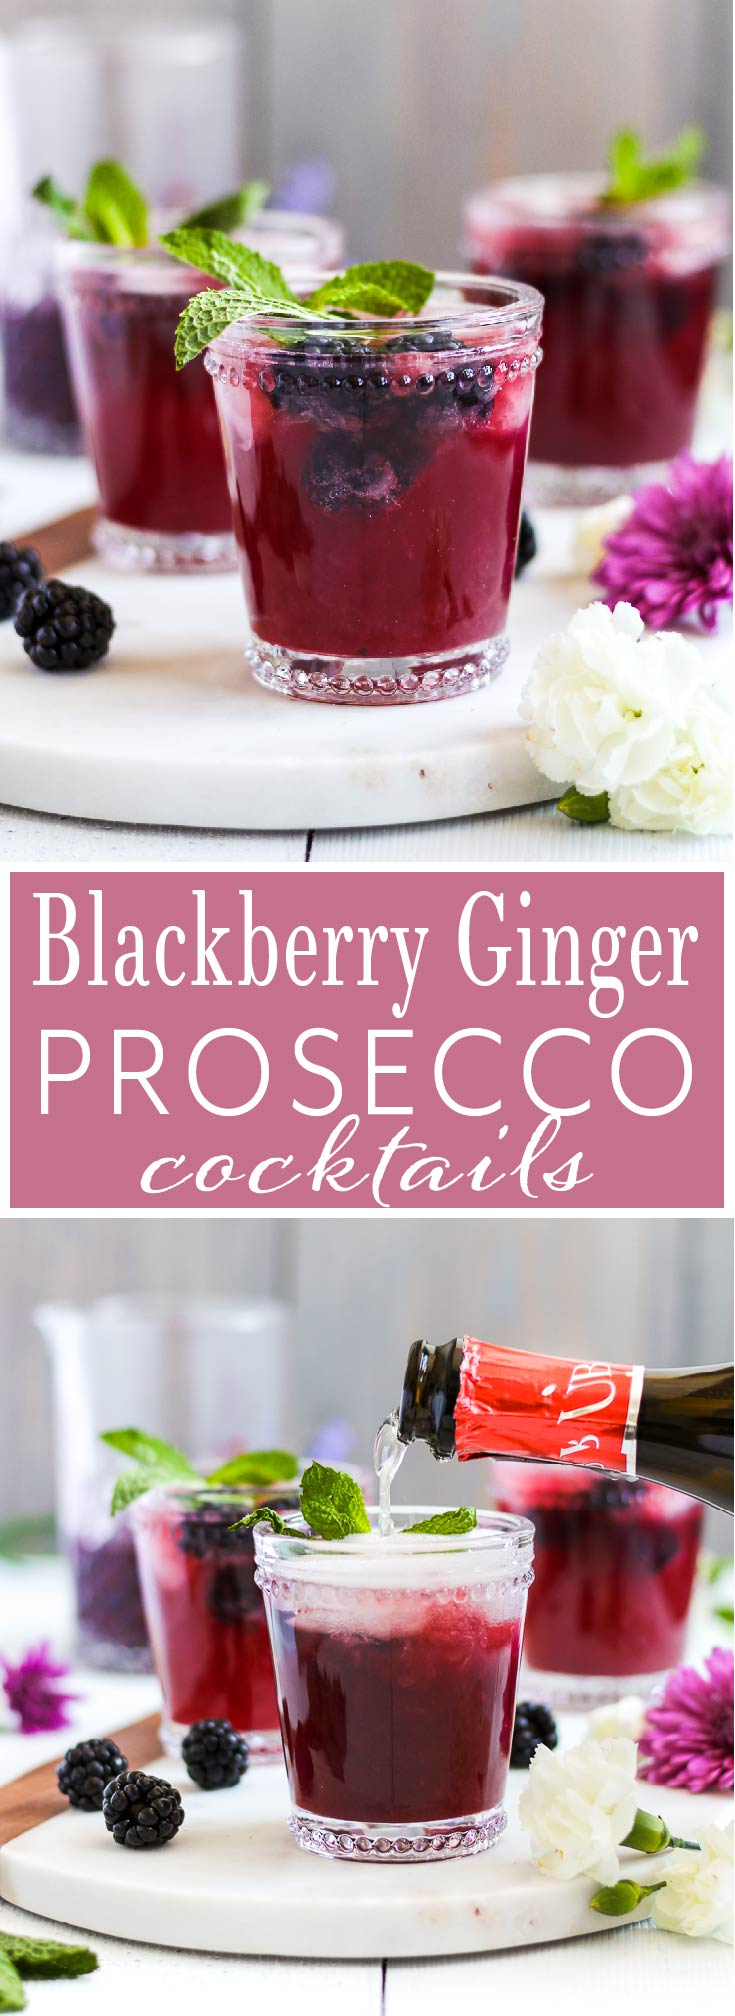 Your new drink of spring and summer! Easy, homemade blackberry ginger simple syrup pairs with lime, vodka and Prosecco creating a tasty and refreshing cocktail that's perfect for brunch, parties or just any that requires a drink or two.